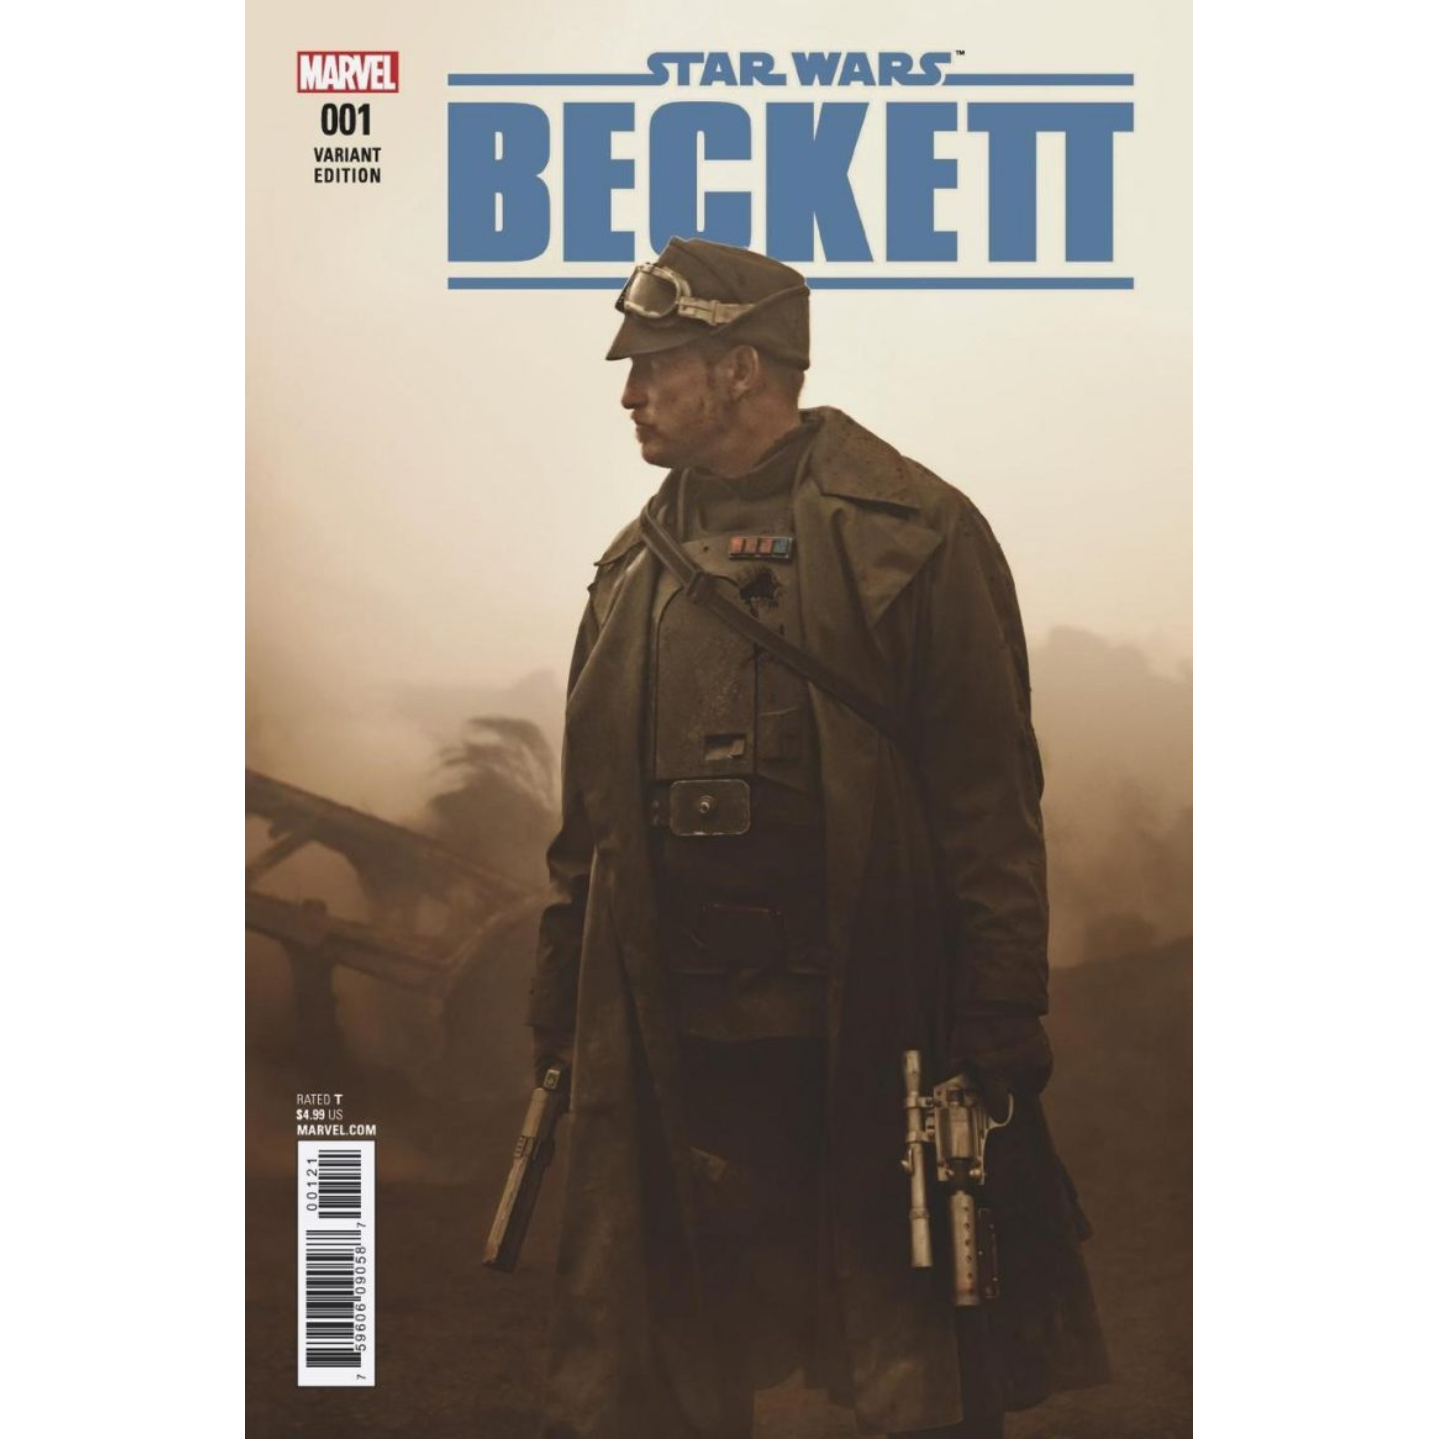 STAR WARS: BECKETT - MOVIE VAR